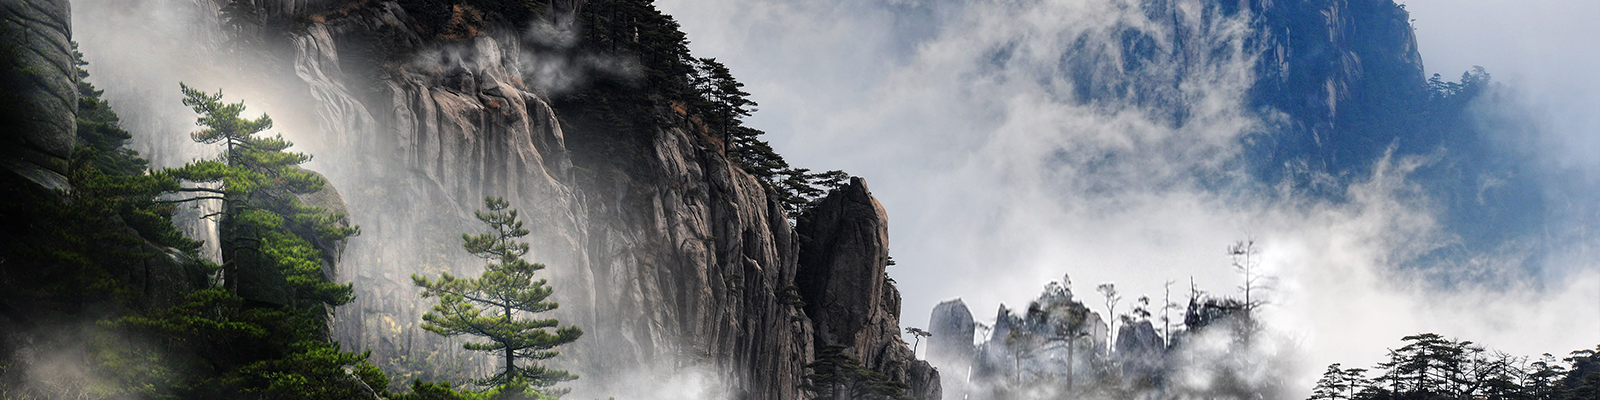 dragontooth mountains in china